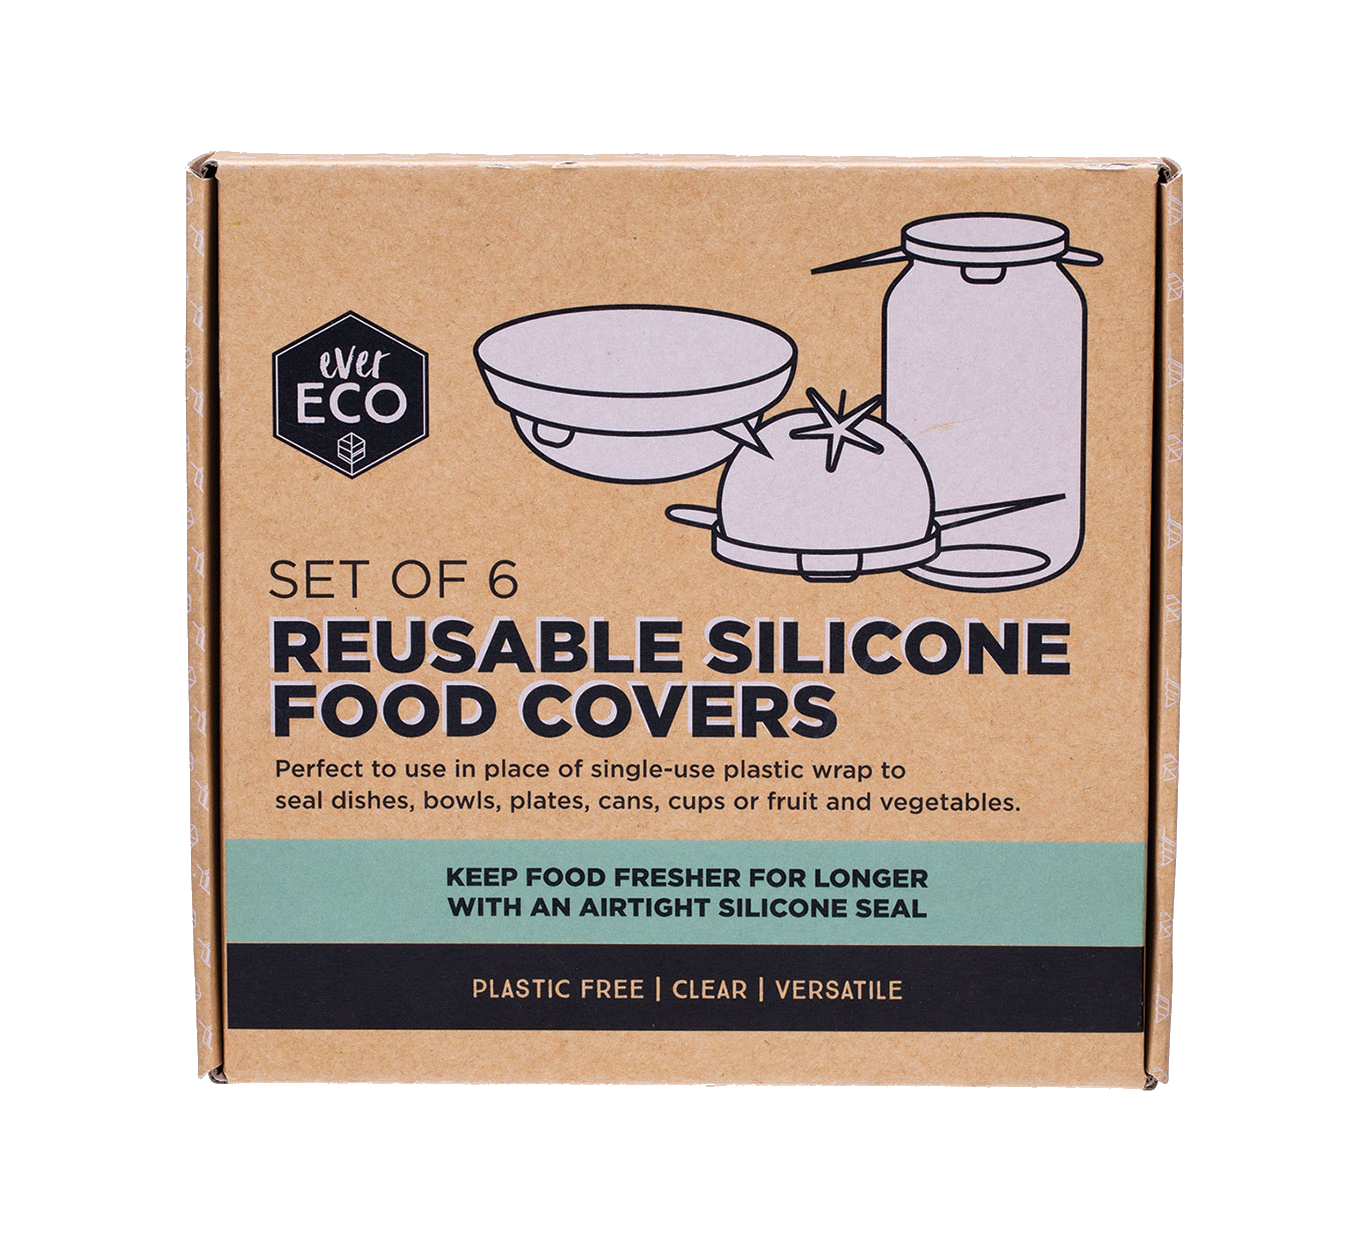 Ever Eco - Reusable Silicone Food Covers Set of 6 - Vegan Pantry Brisbane